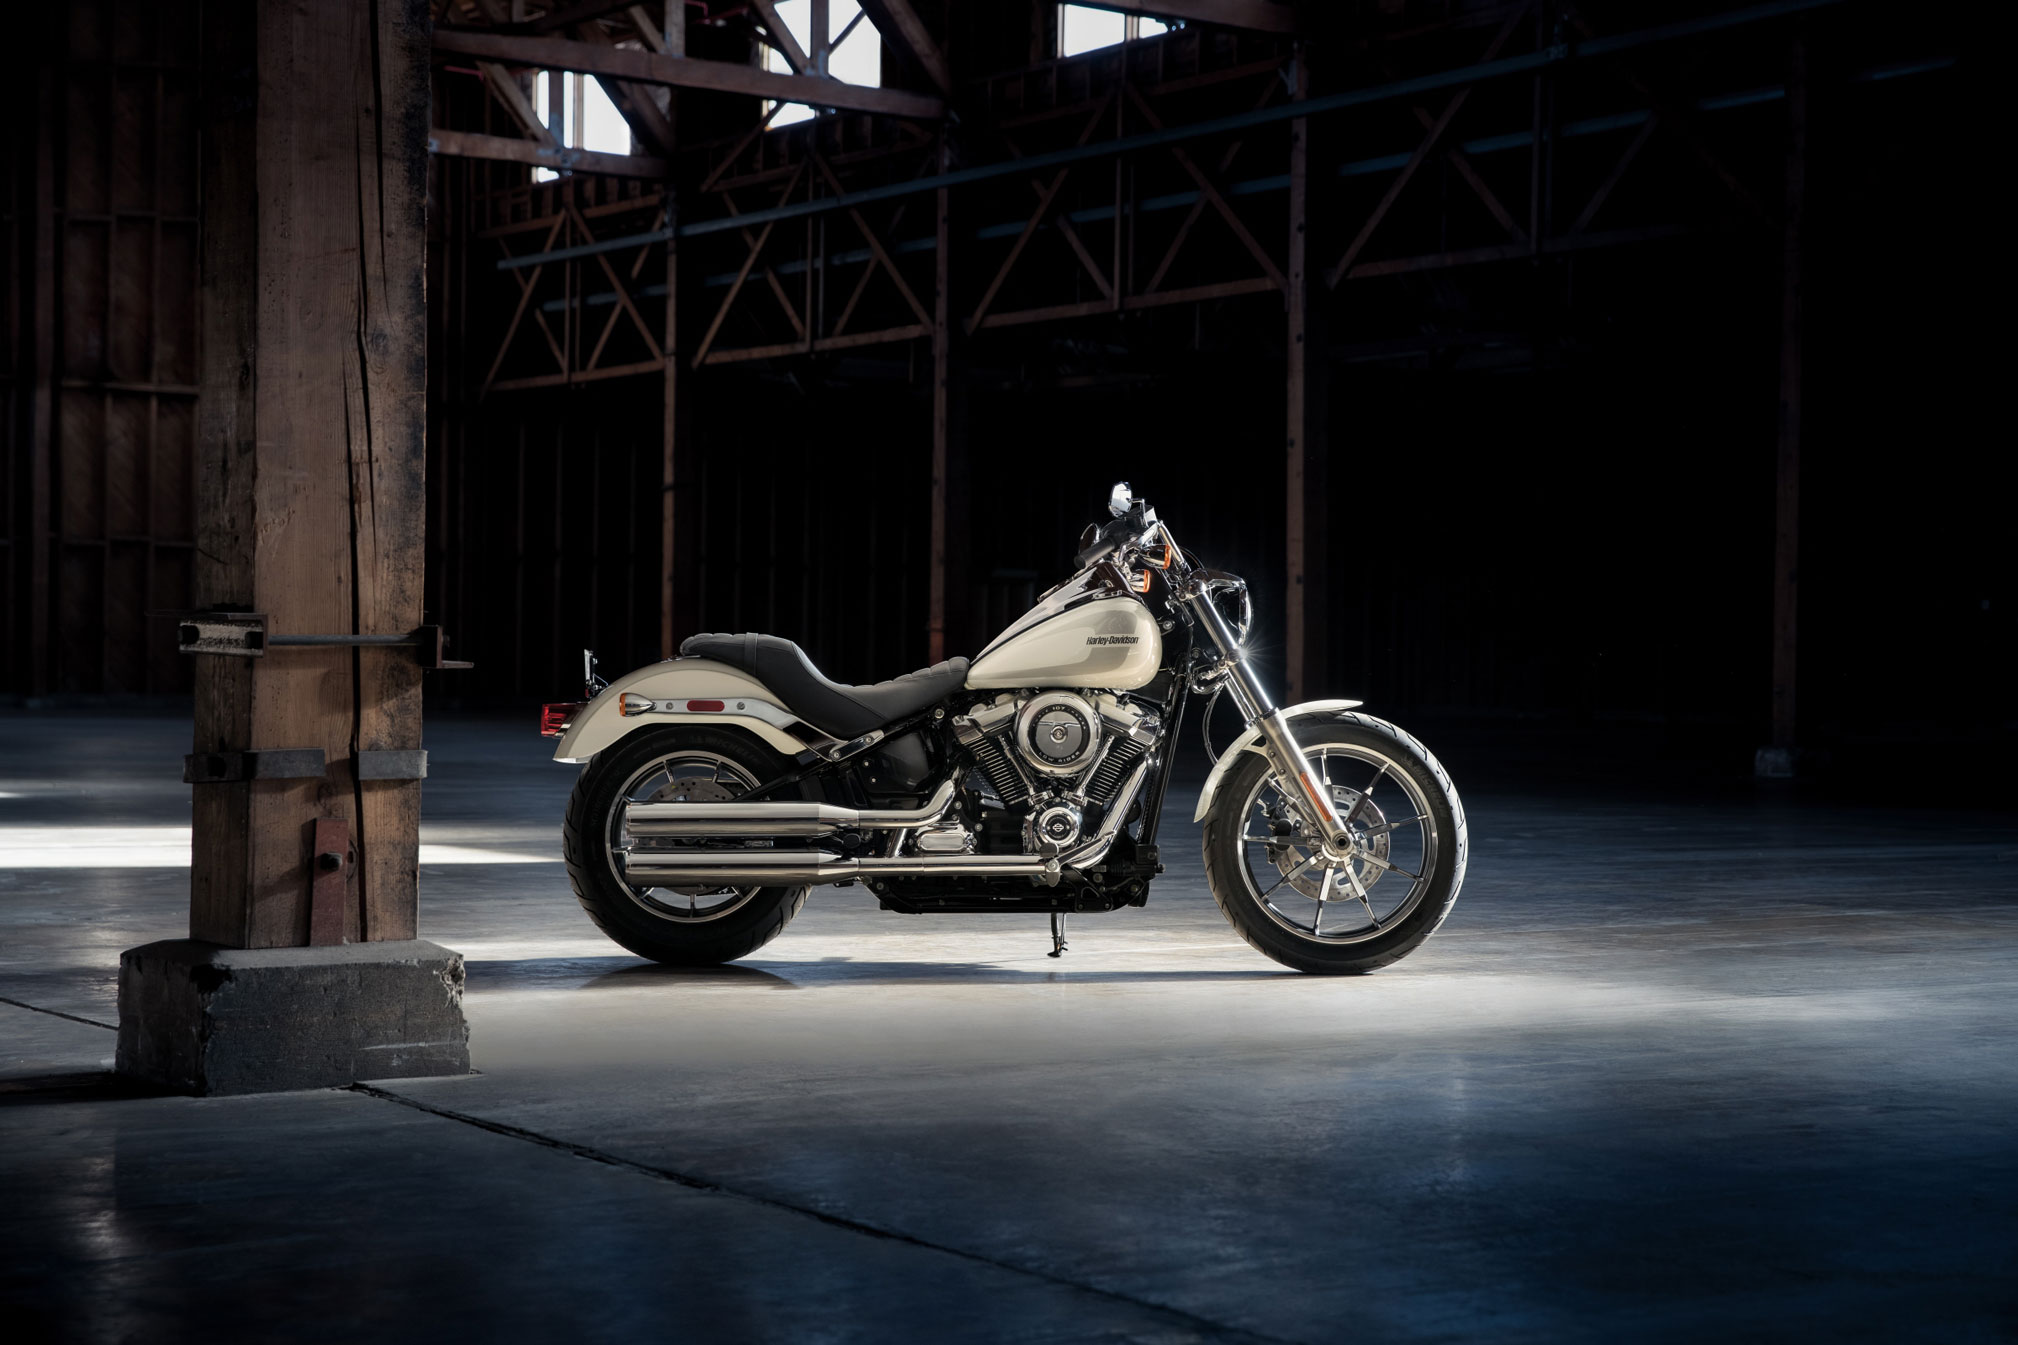 2018 Harley-Davidson Low Rider Review • Total Motorcycle